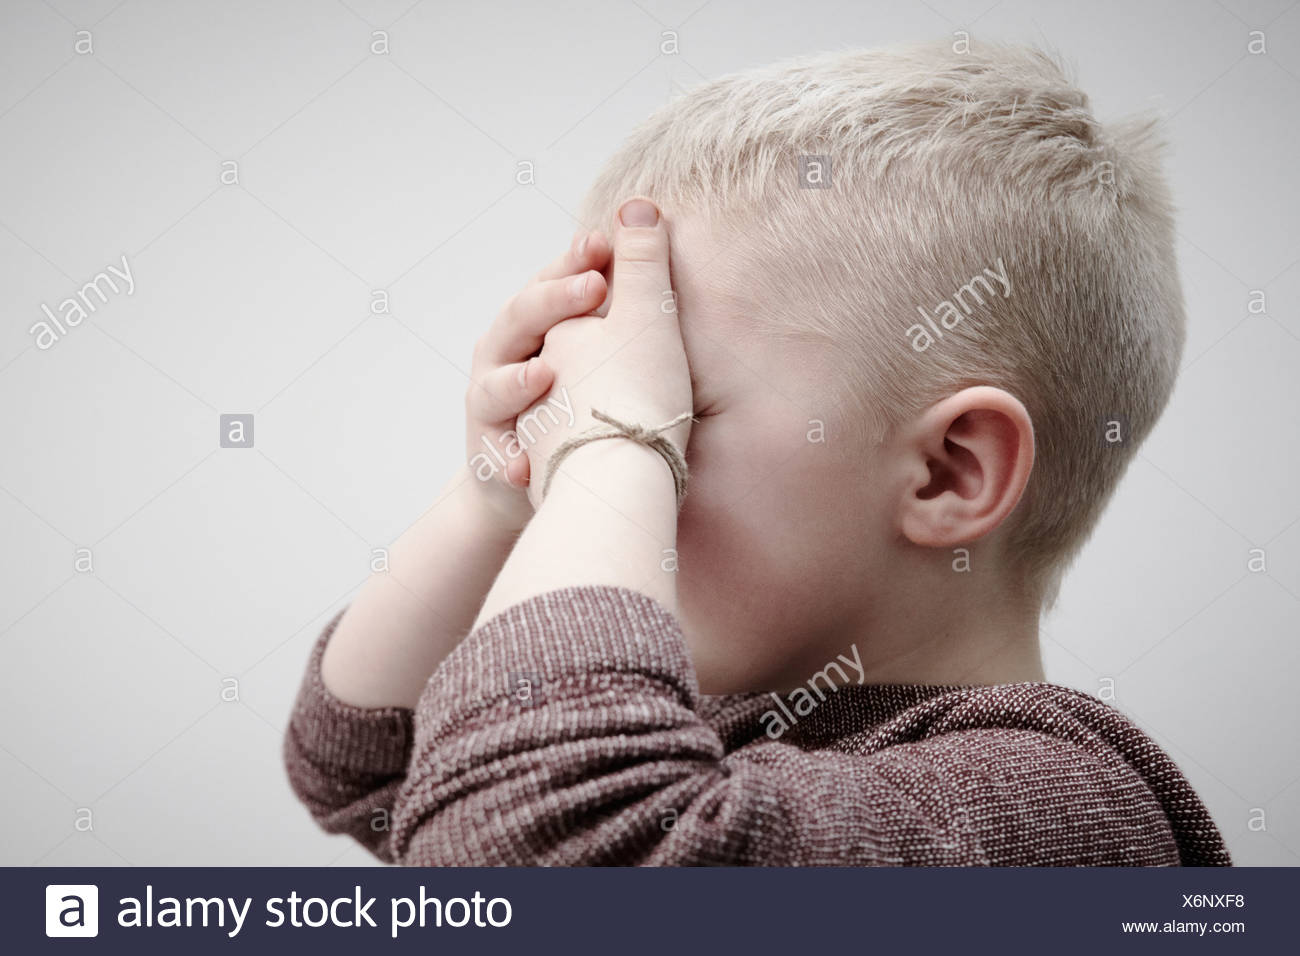 Portrait of boy wearing brown jumper, covering face with hands Stock Photo